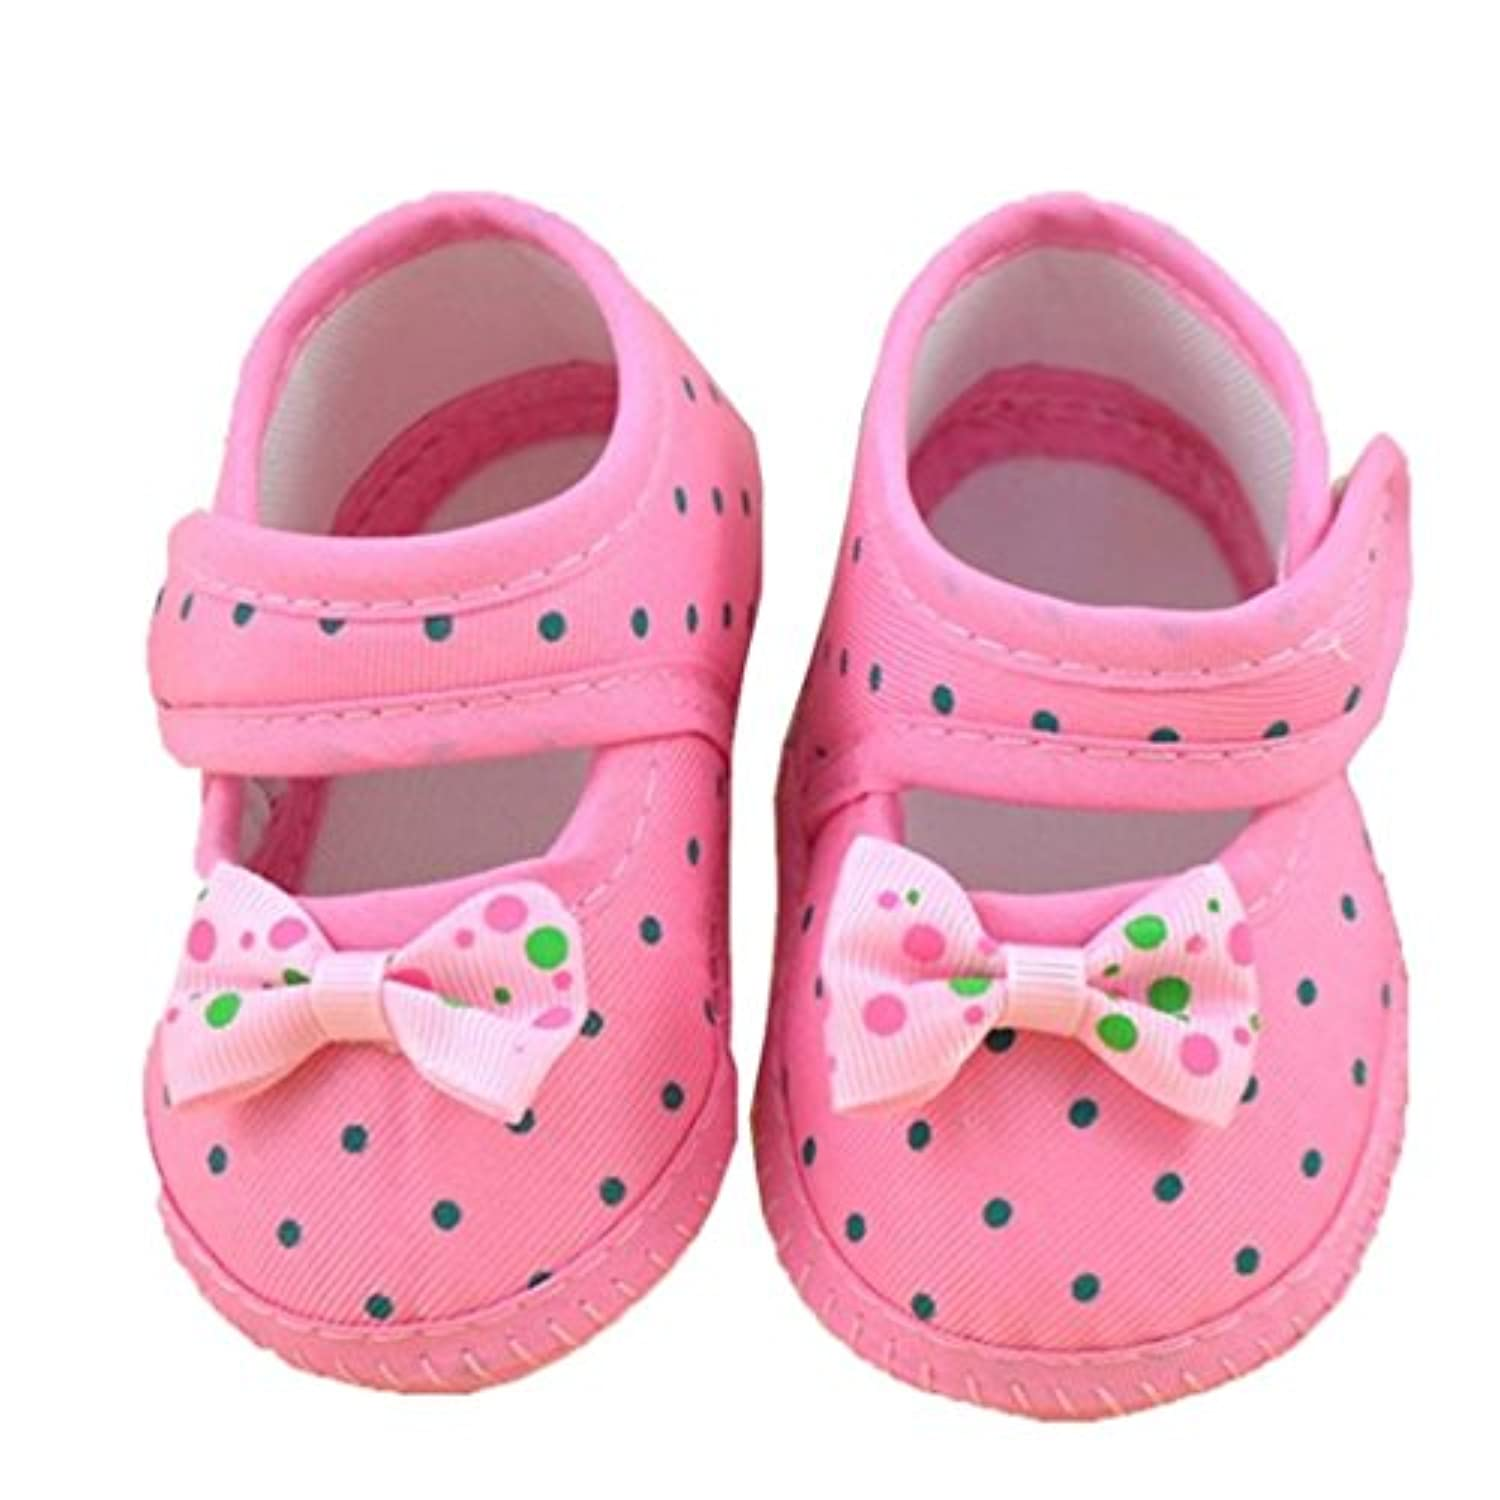 Franterd Baby Sneaker Toddler Shoes Bowknot Boots Soft Crib Shoes (3, Pink) by Franterd